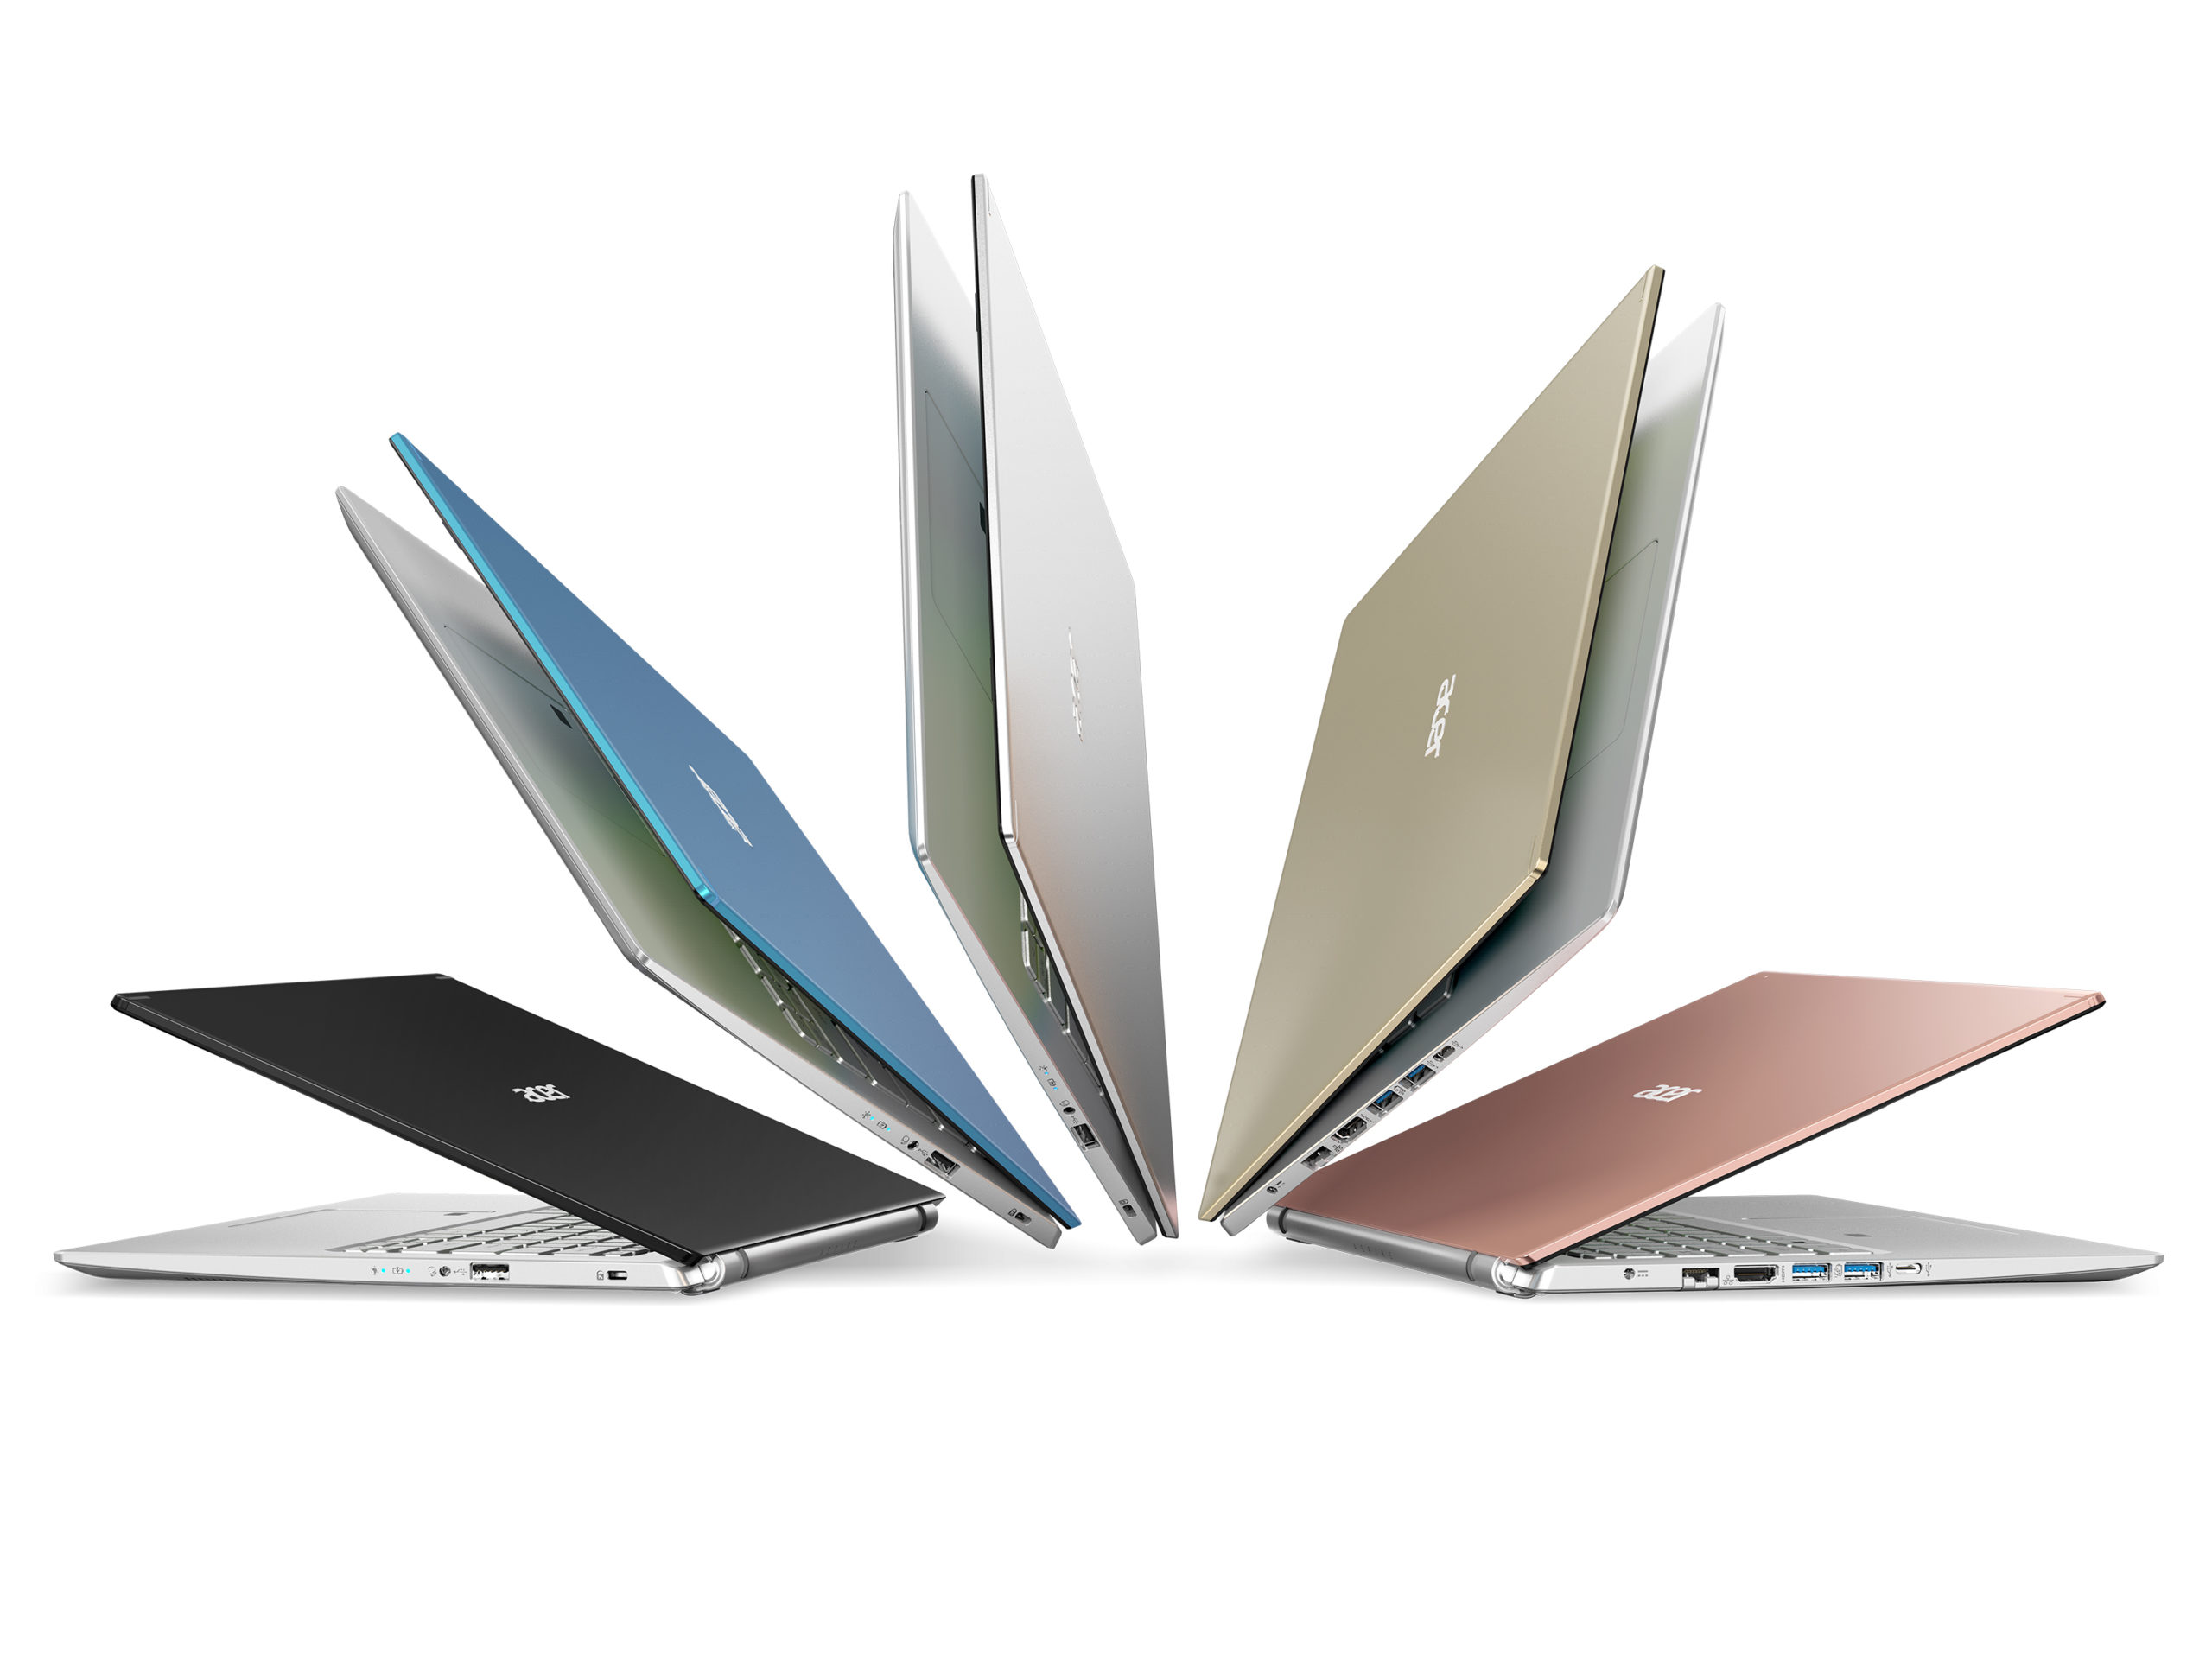 5 Acer Aspire 5 notebooks in various colors fanned out